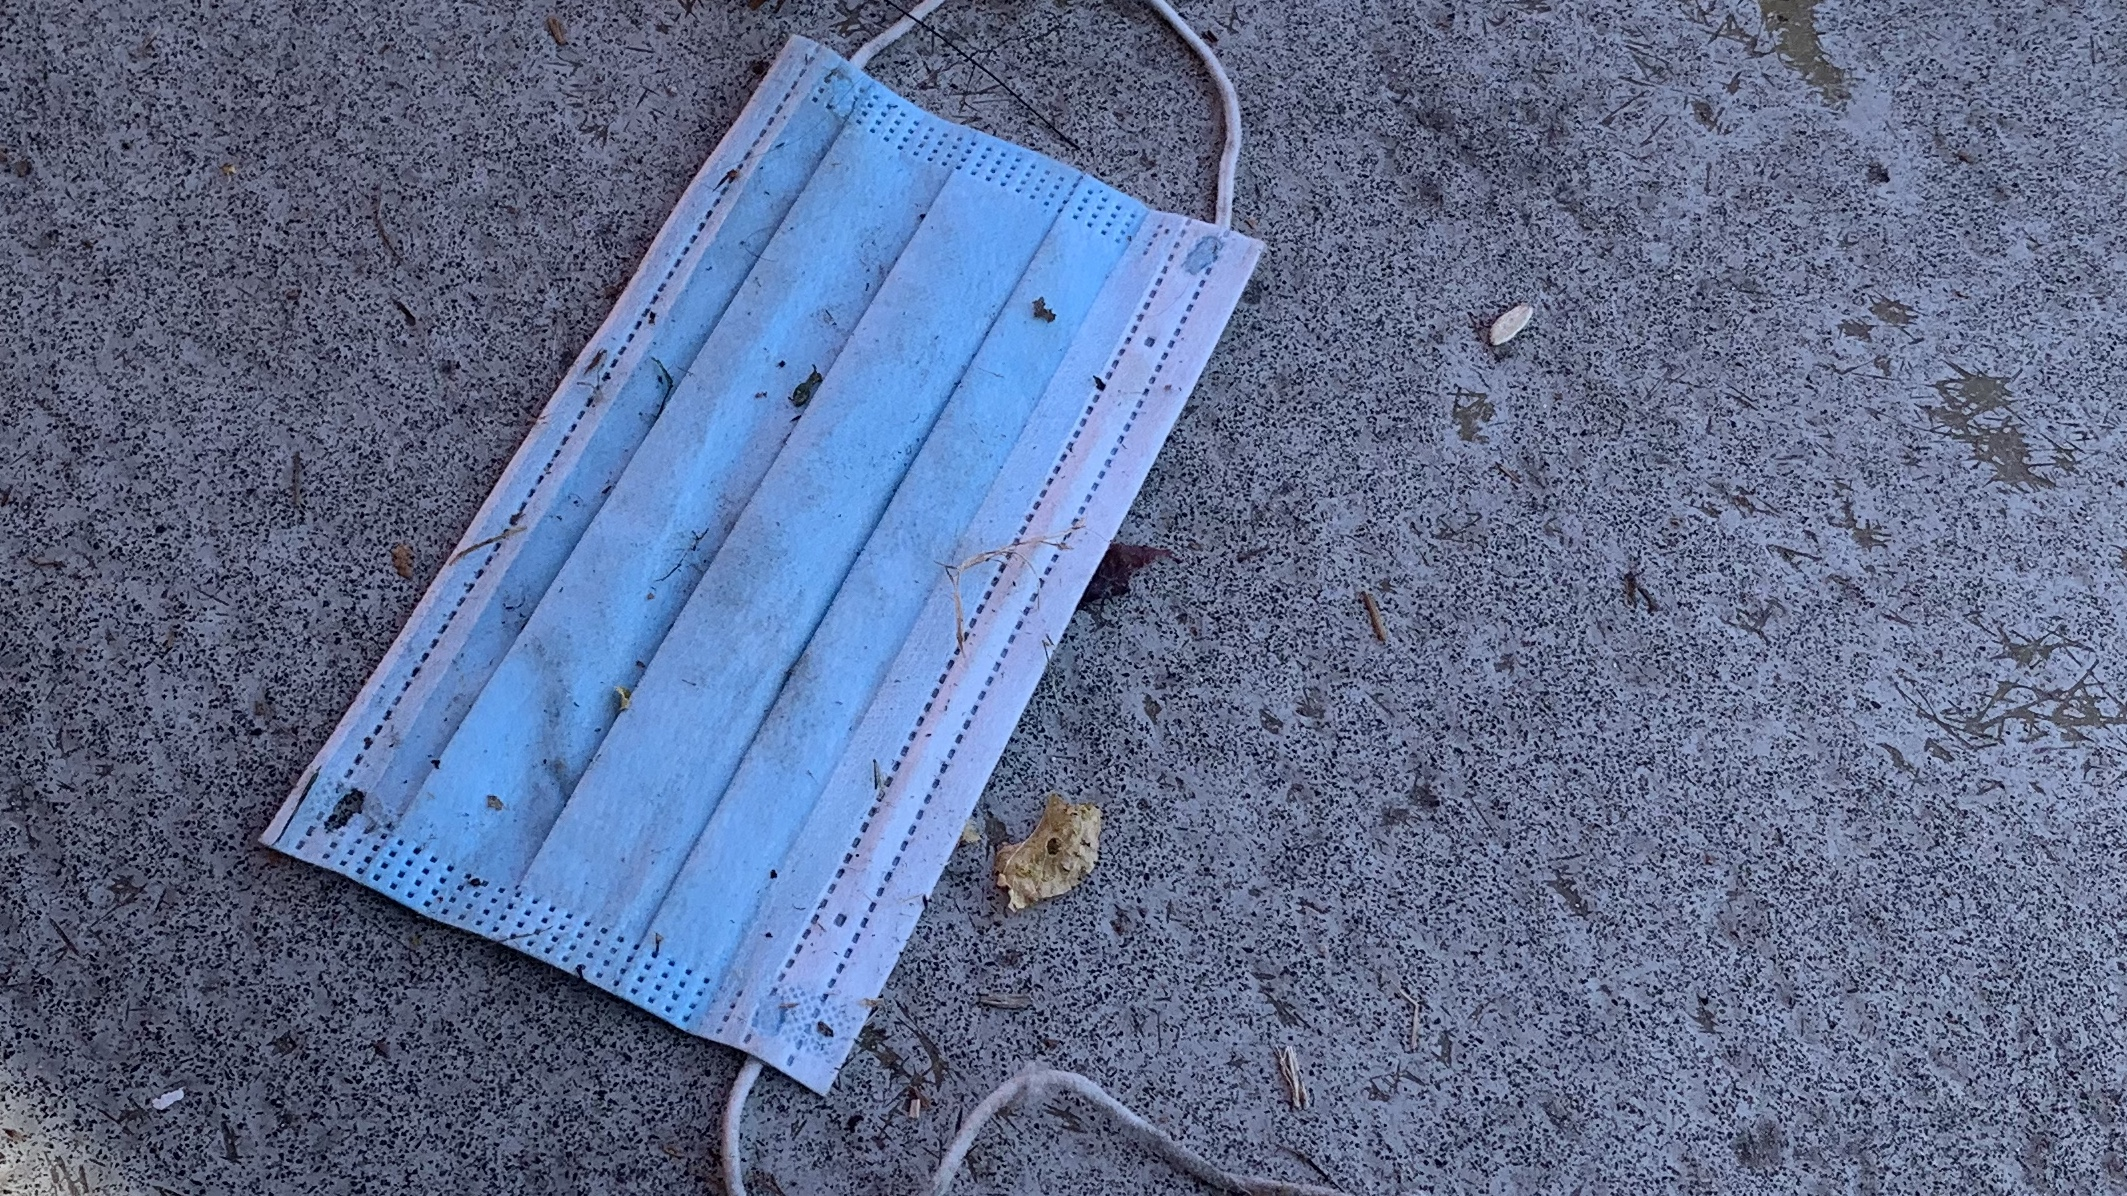 Discarded single-use mask on the ground